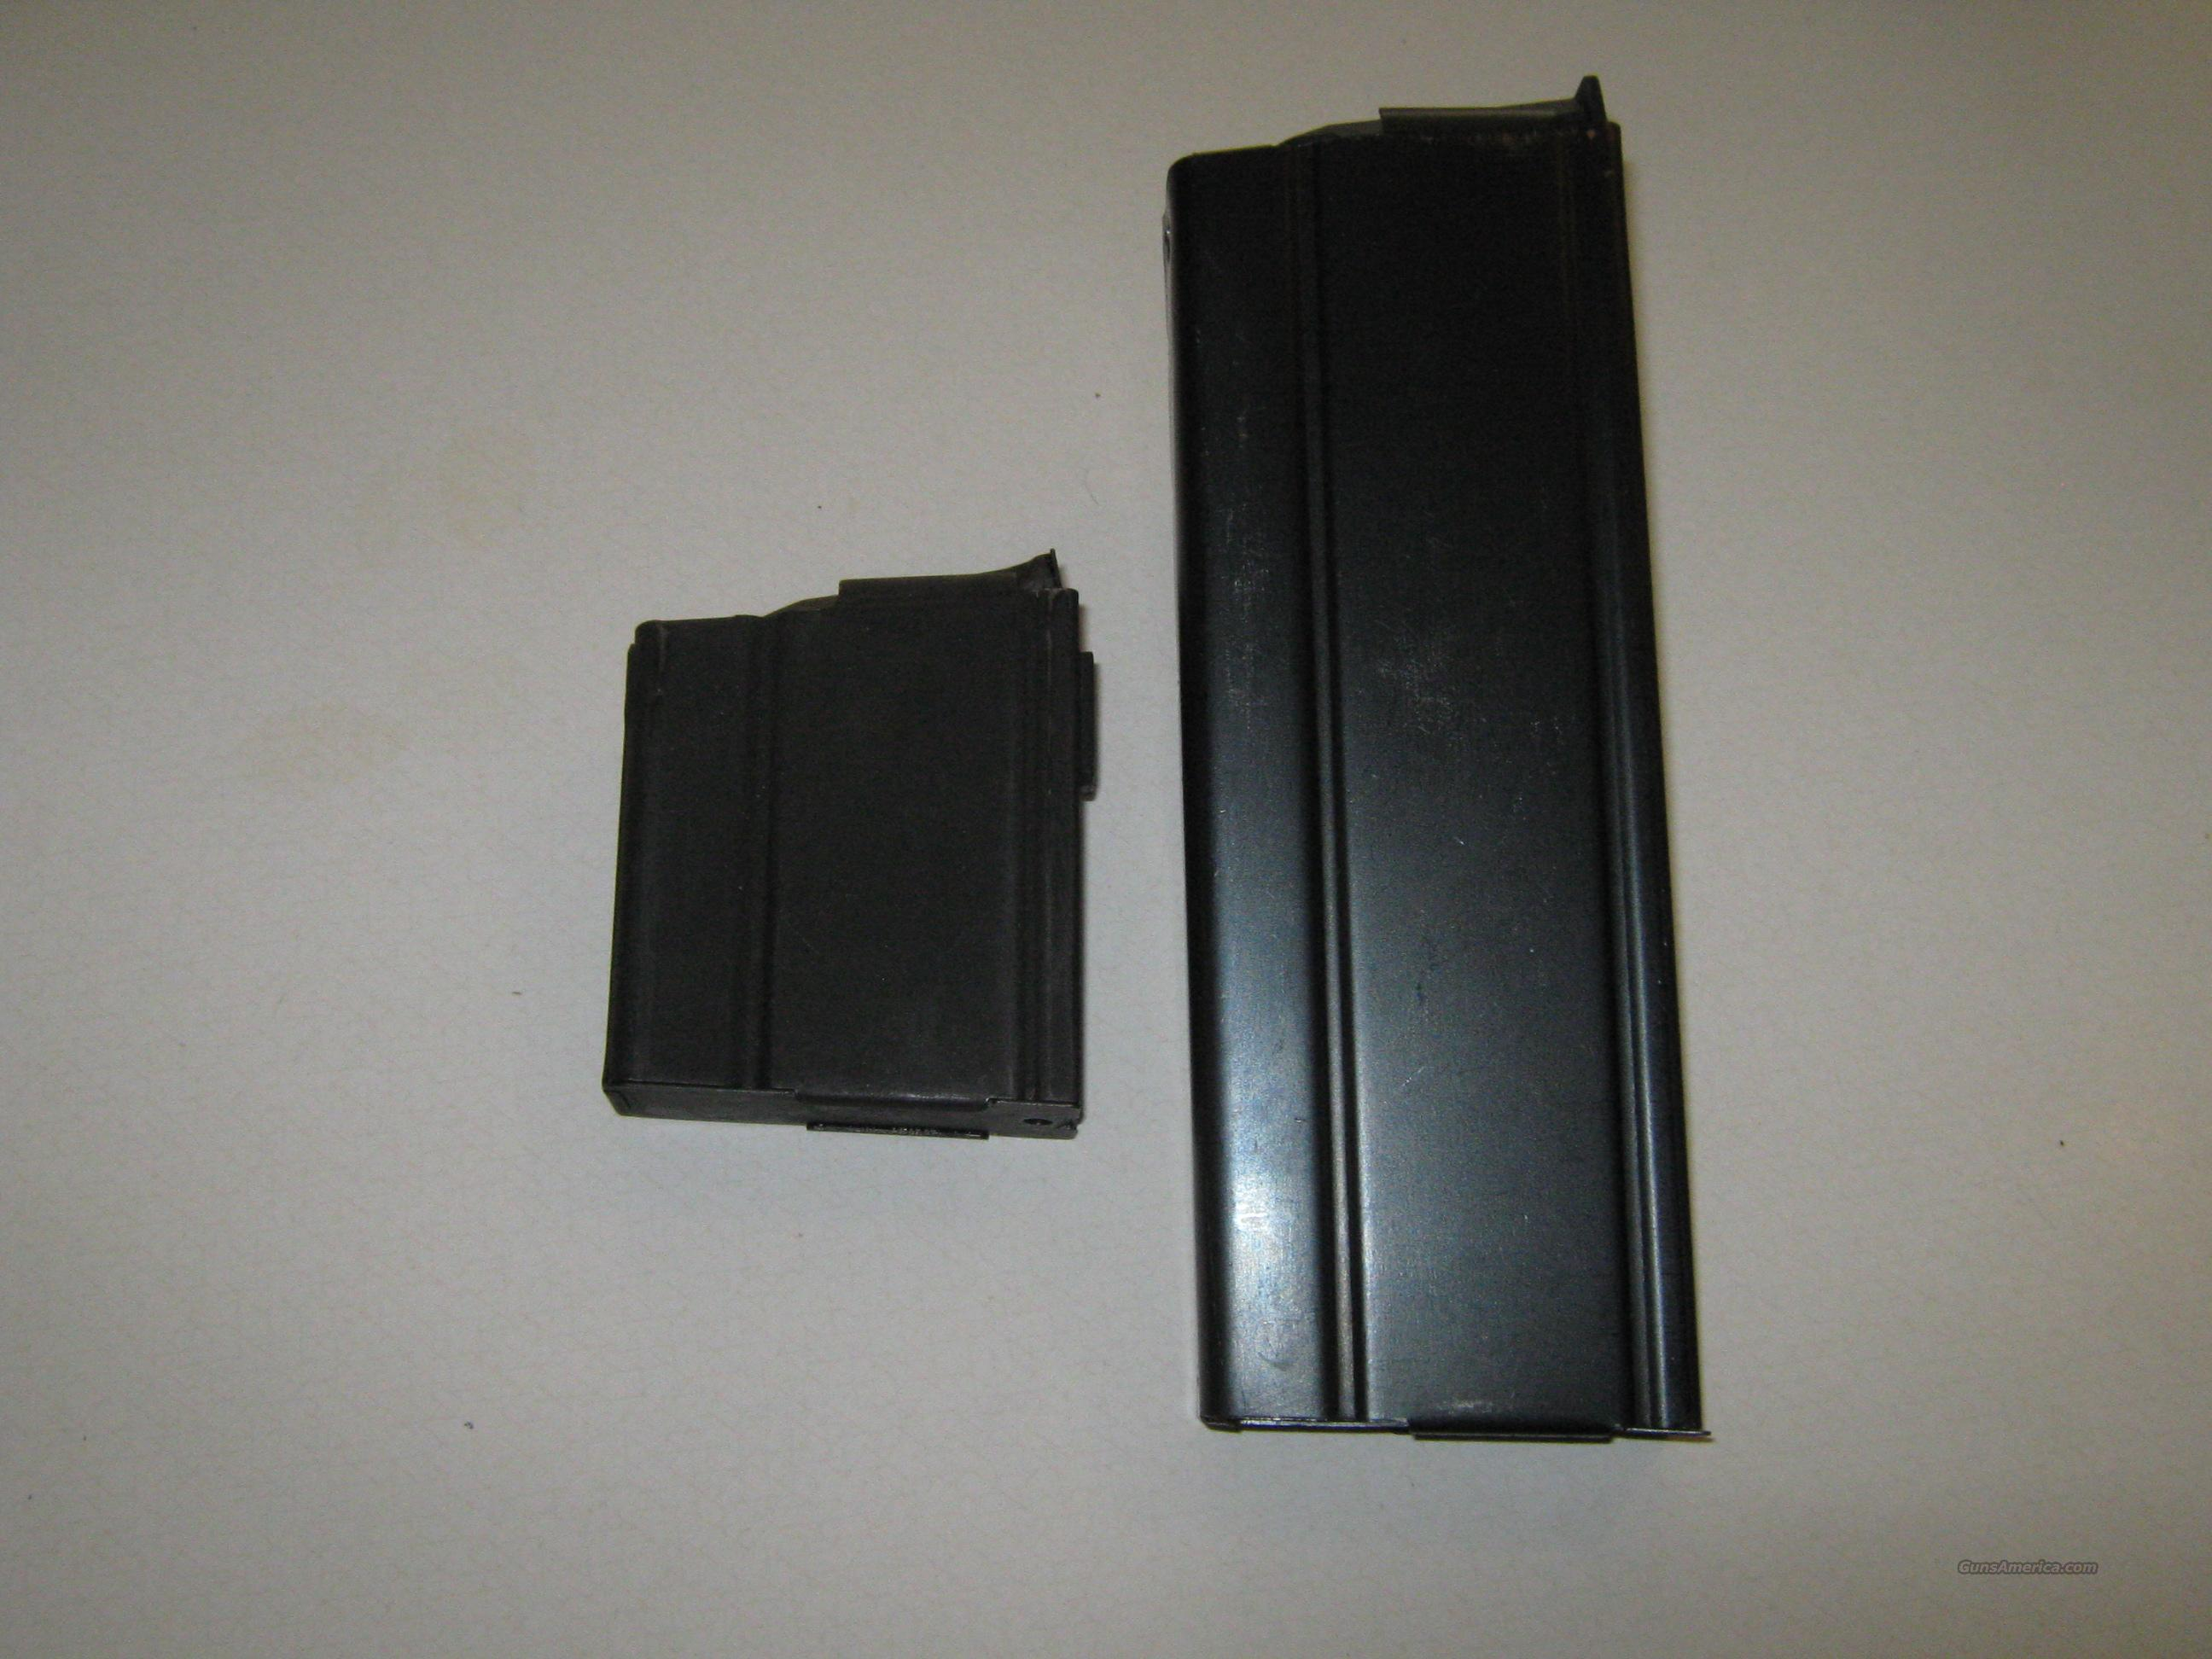 M1a M14 2 magazines 30 round and 5 round  Non-Guns > Magazines & Clips > Rifle Magazines > M-14/M1A